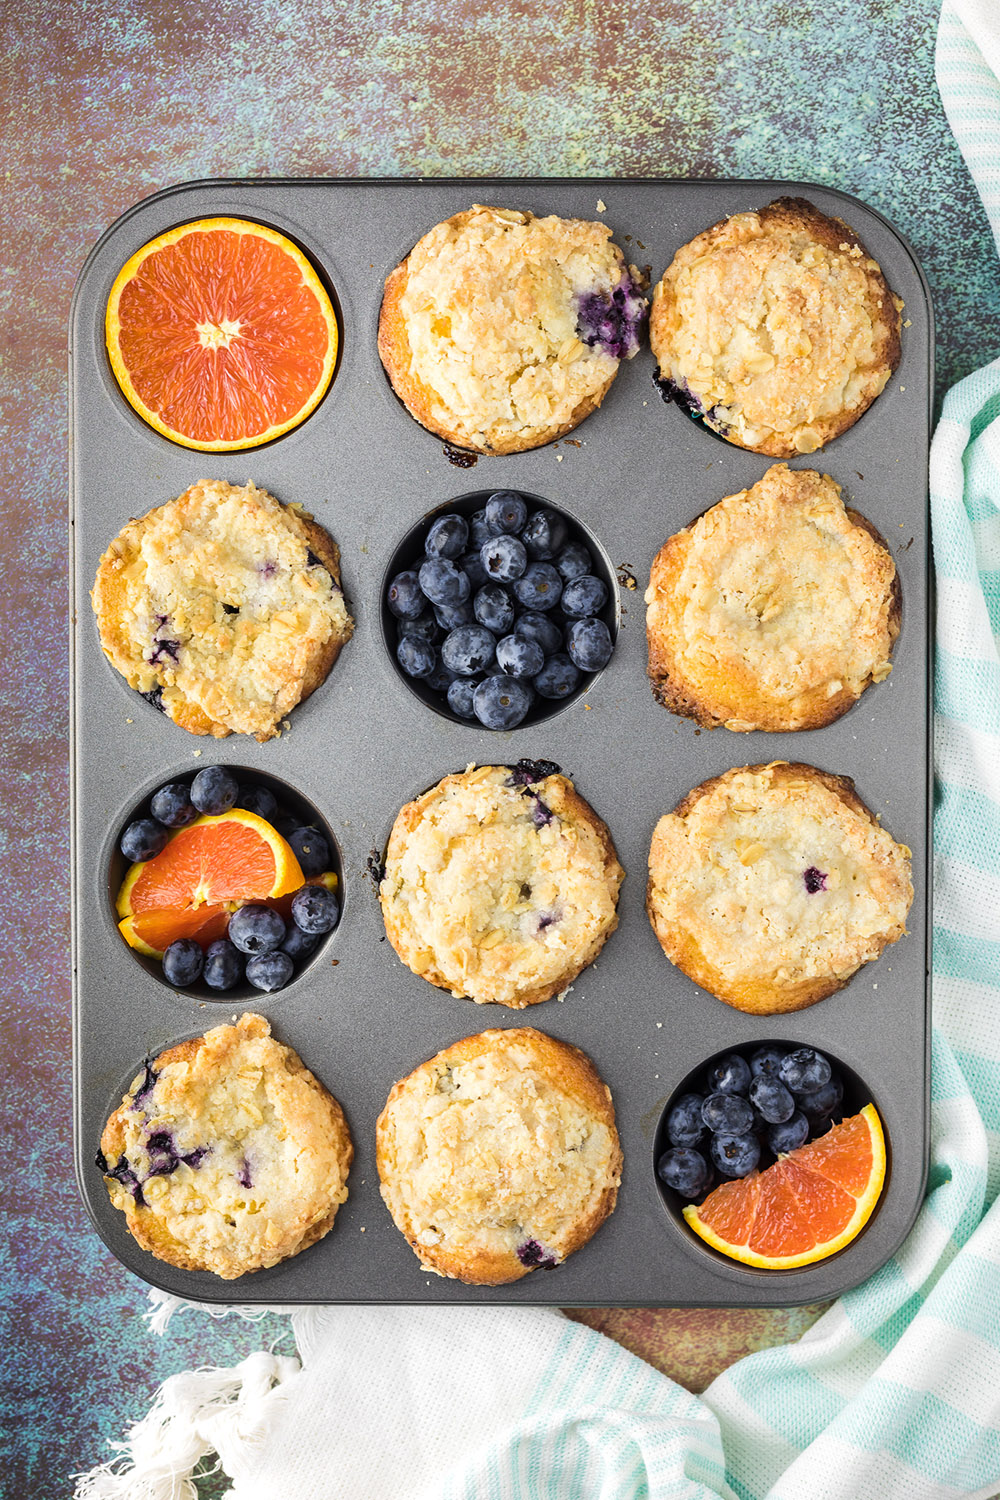 Muffin tin with muffins, oranges, and blueberries in it.